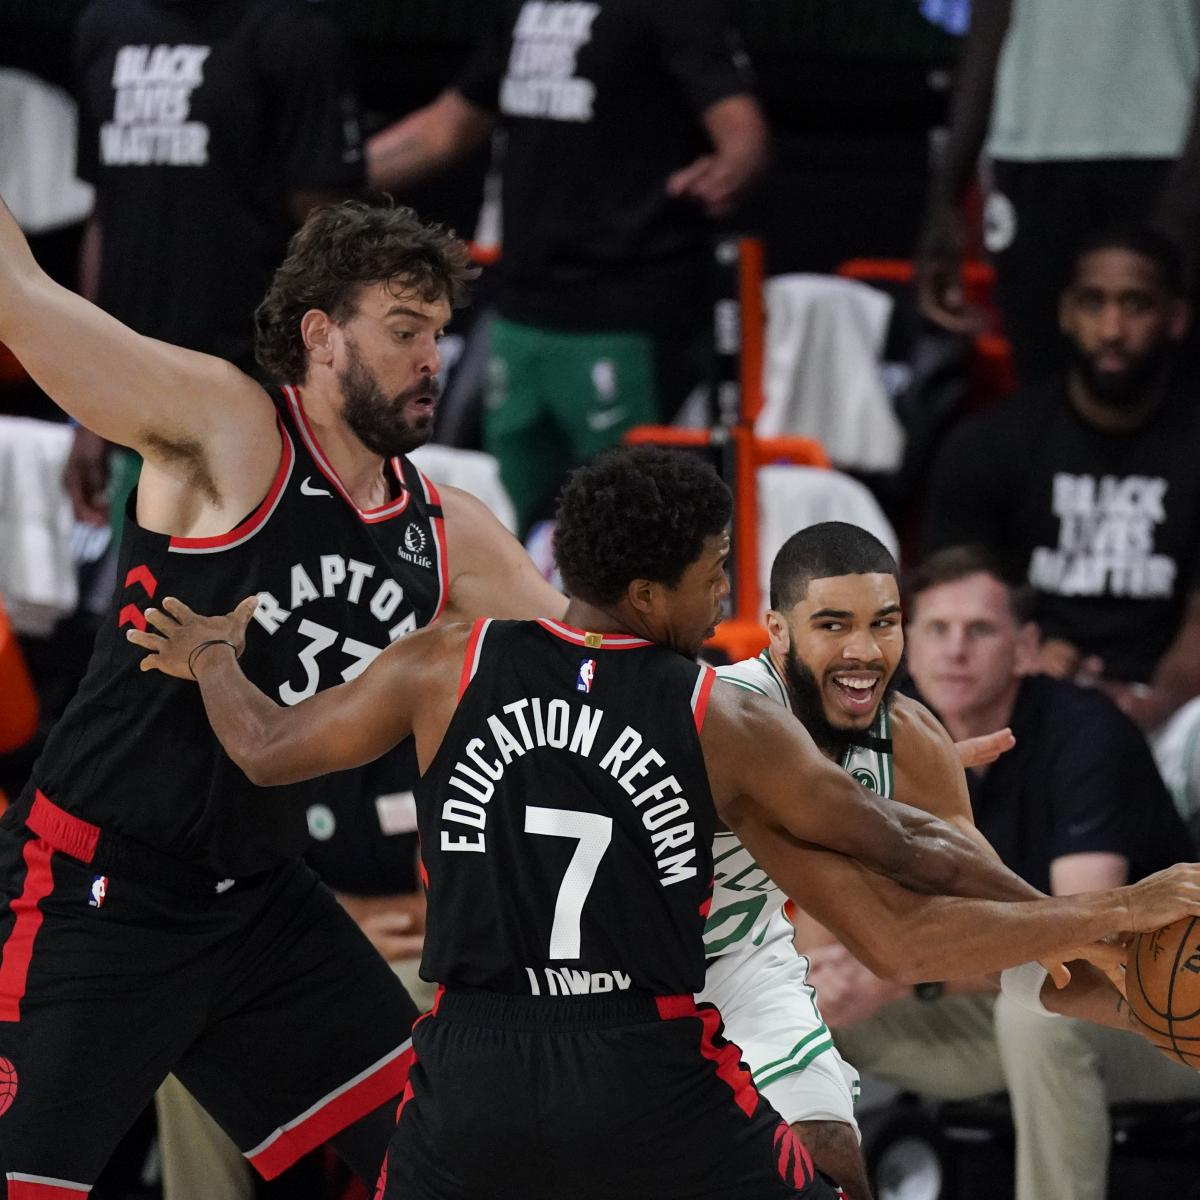 Report: Raptors Have Discussed Playing 2020-21 Home Games at Prudential Center